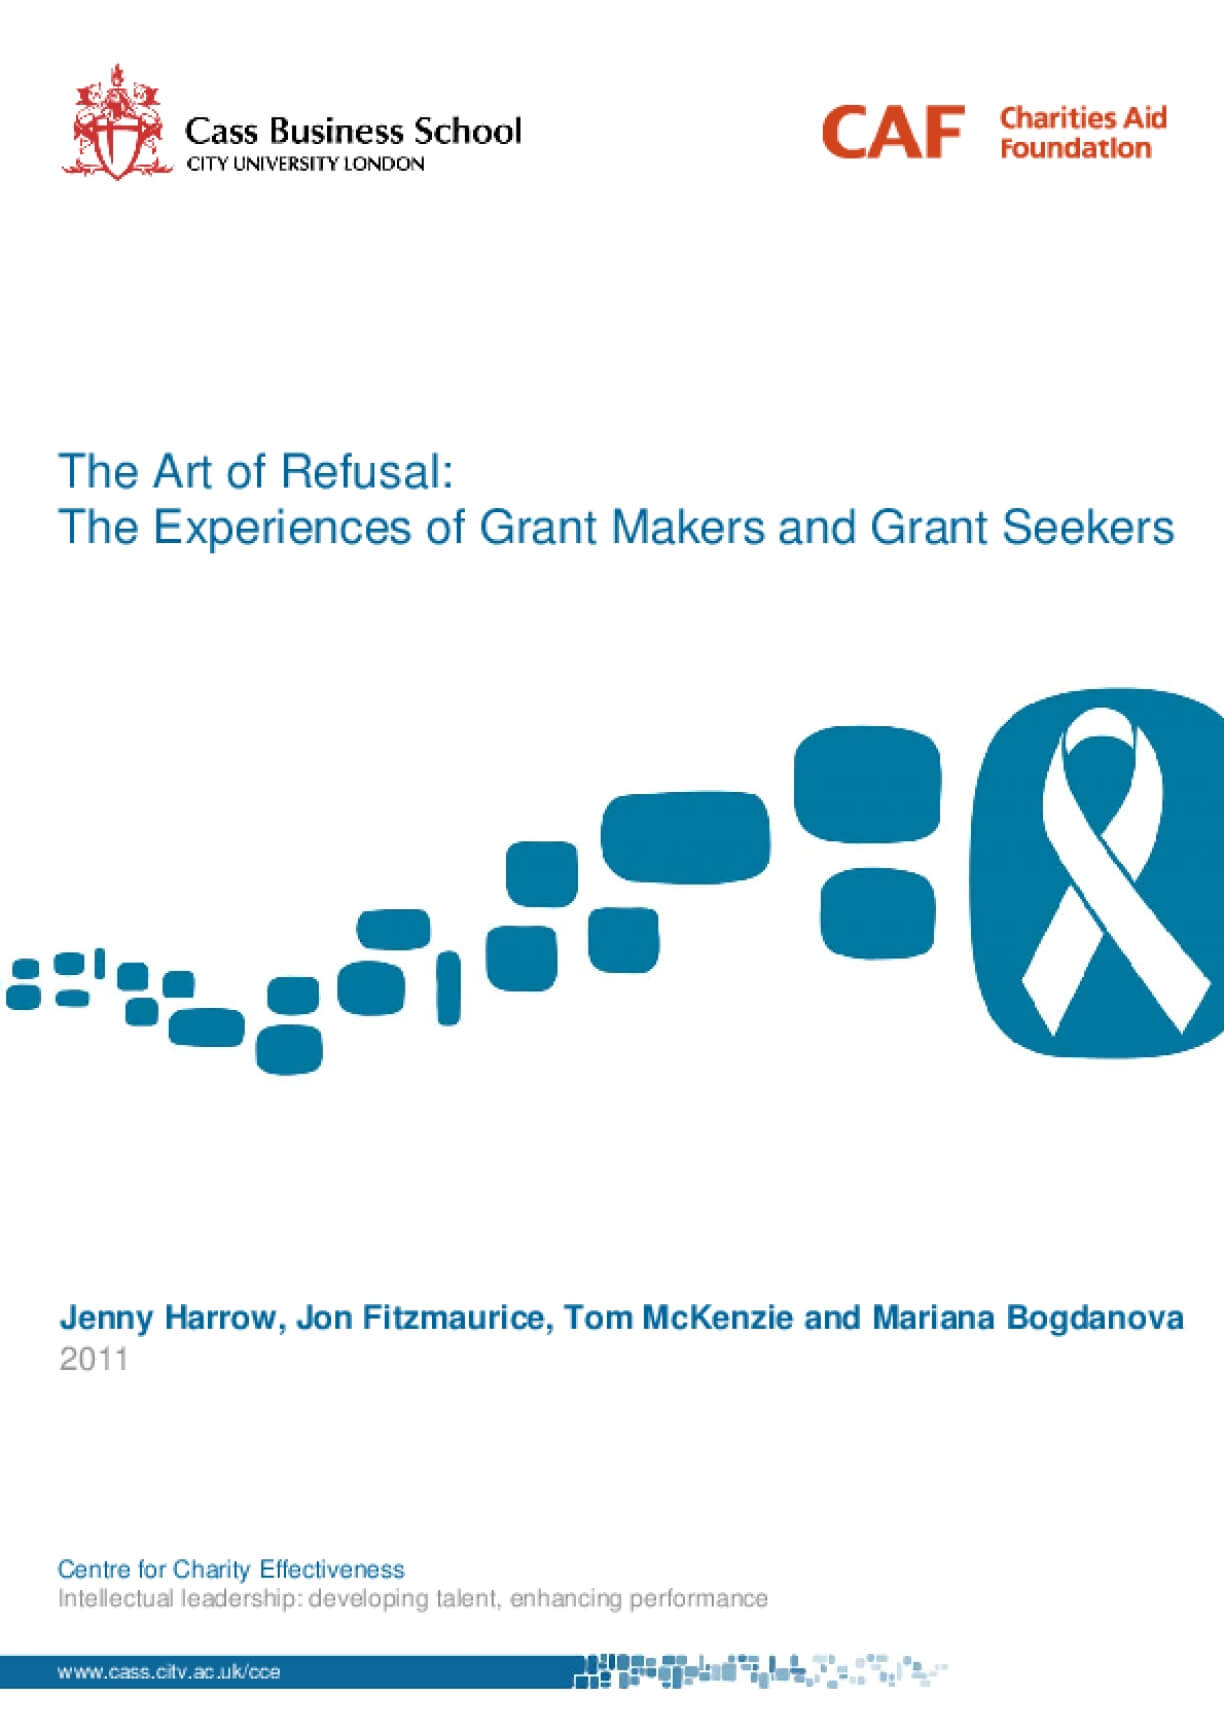 The Art of Refusal: The Experience of Grant Makers and Grant Seekers